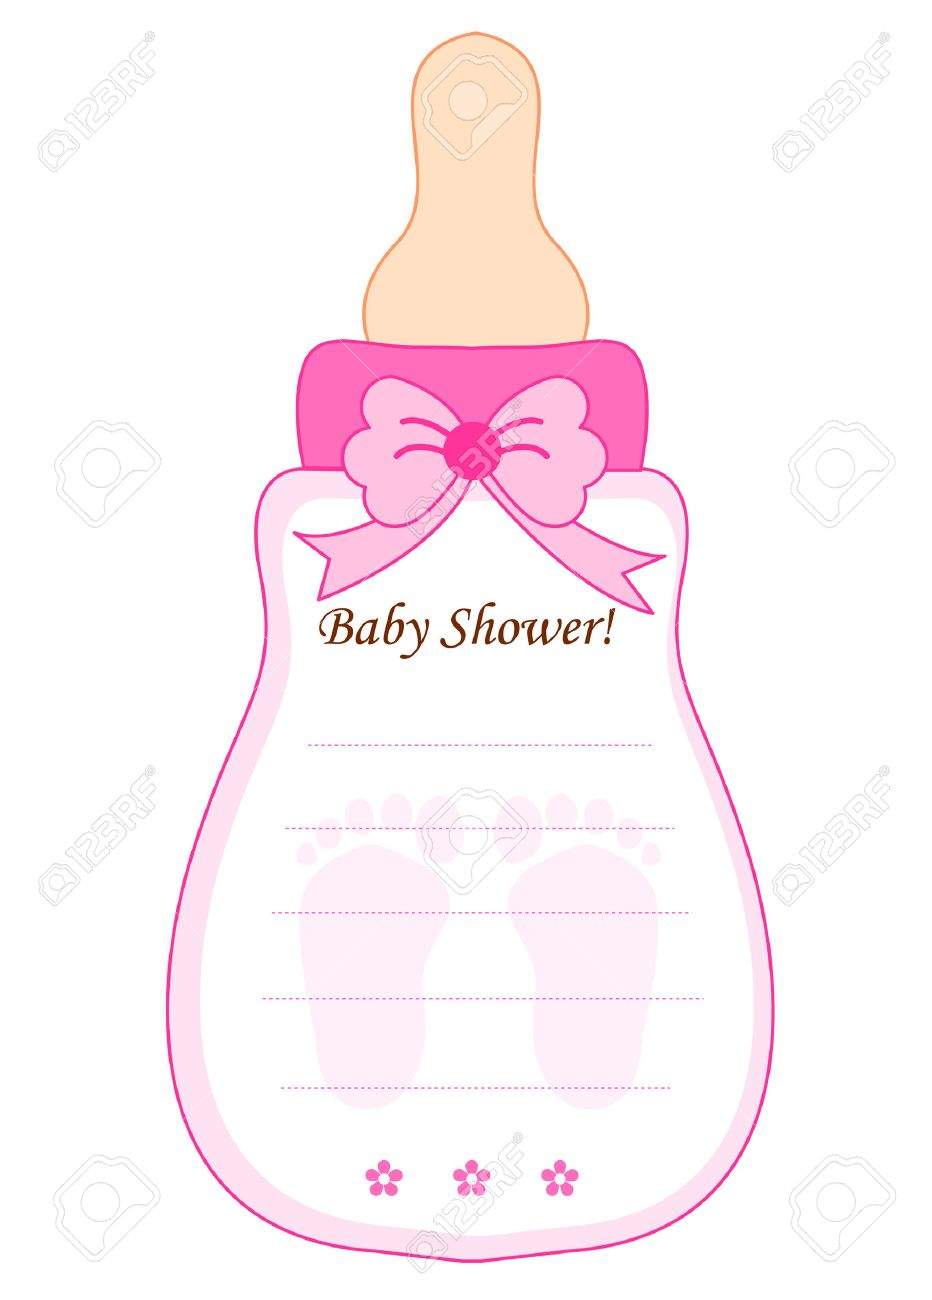 cute feeding bottle shaped baby shower invitation card template